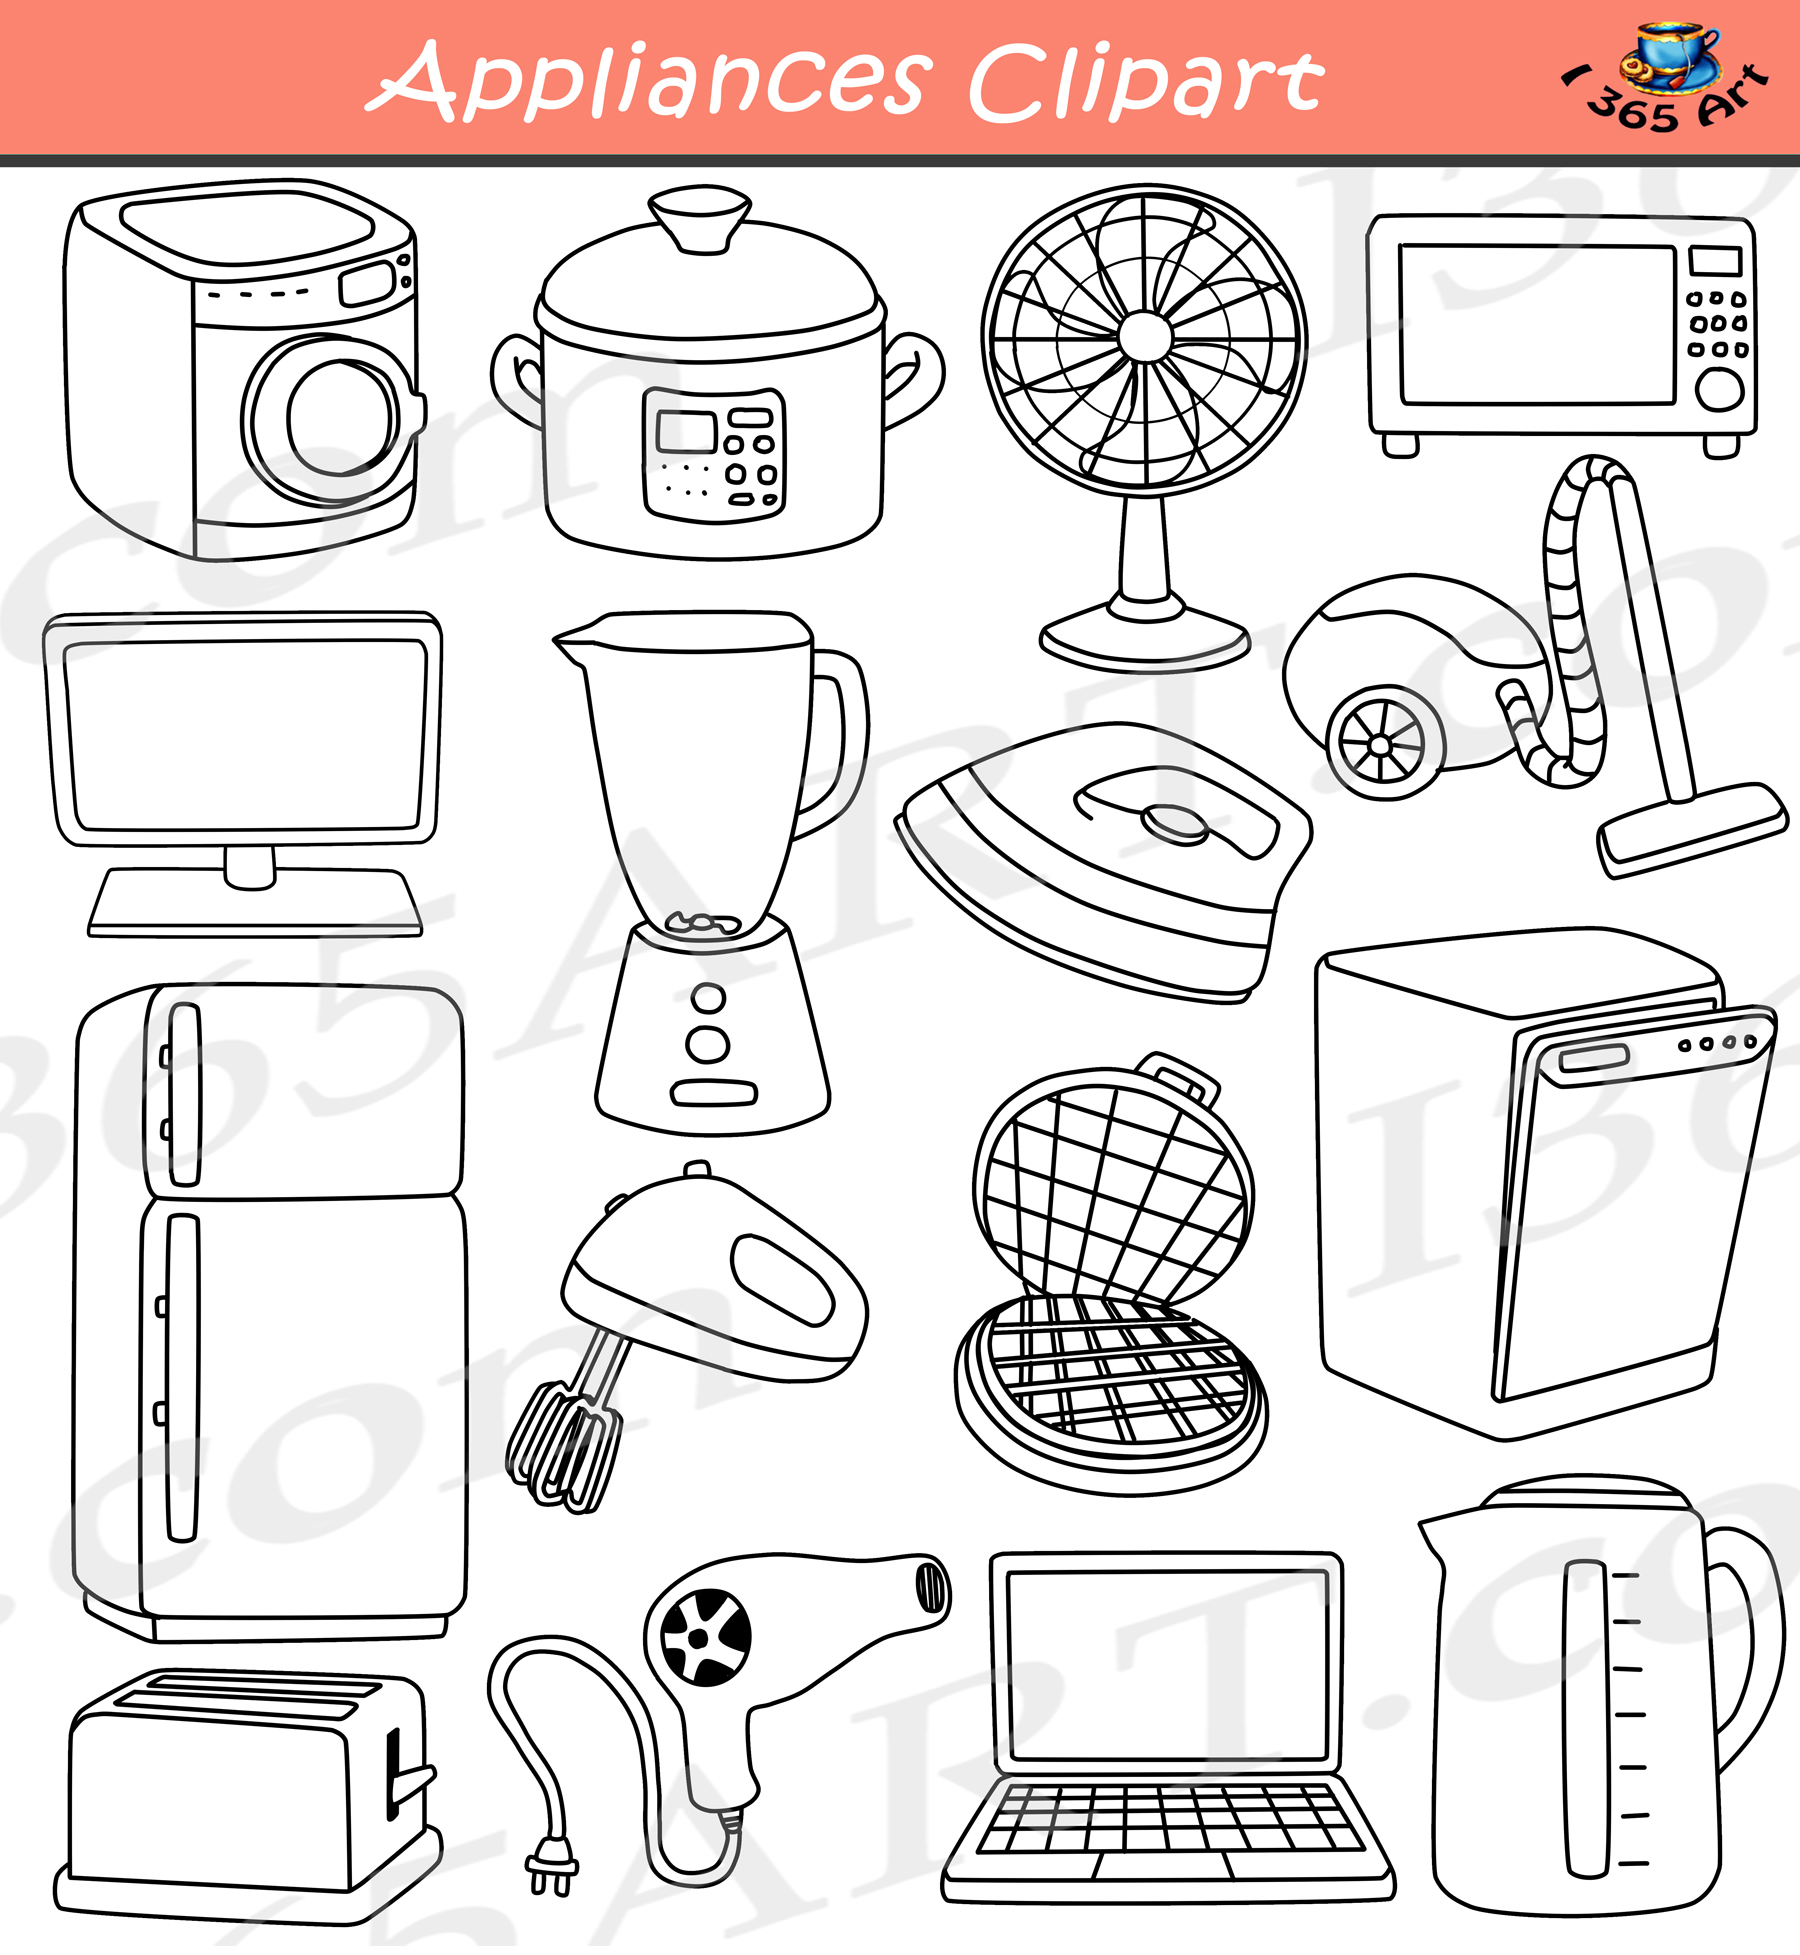 Appliances Clipart Amp Electrical Devices School Clipart